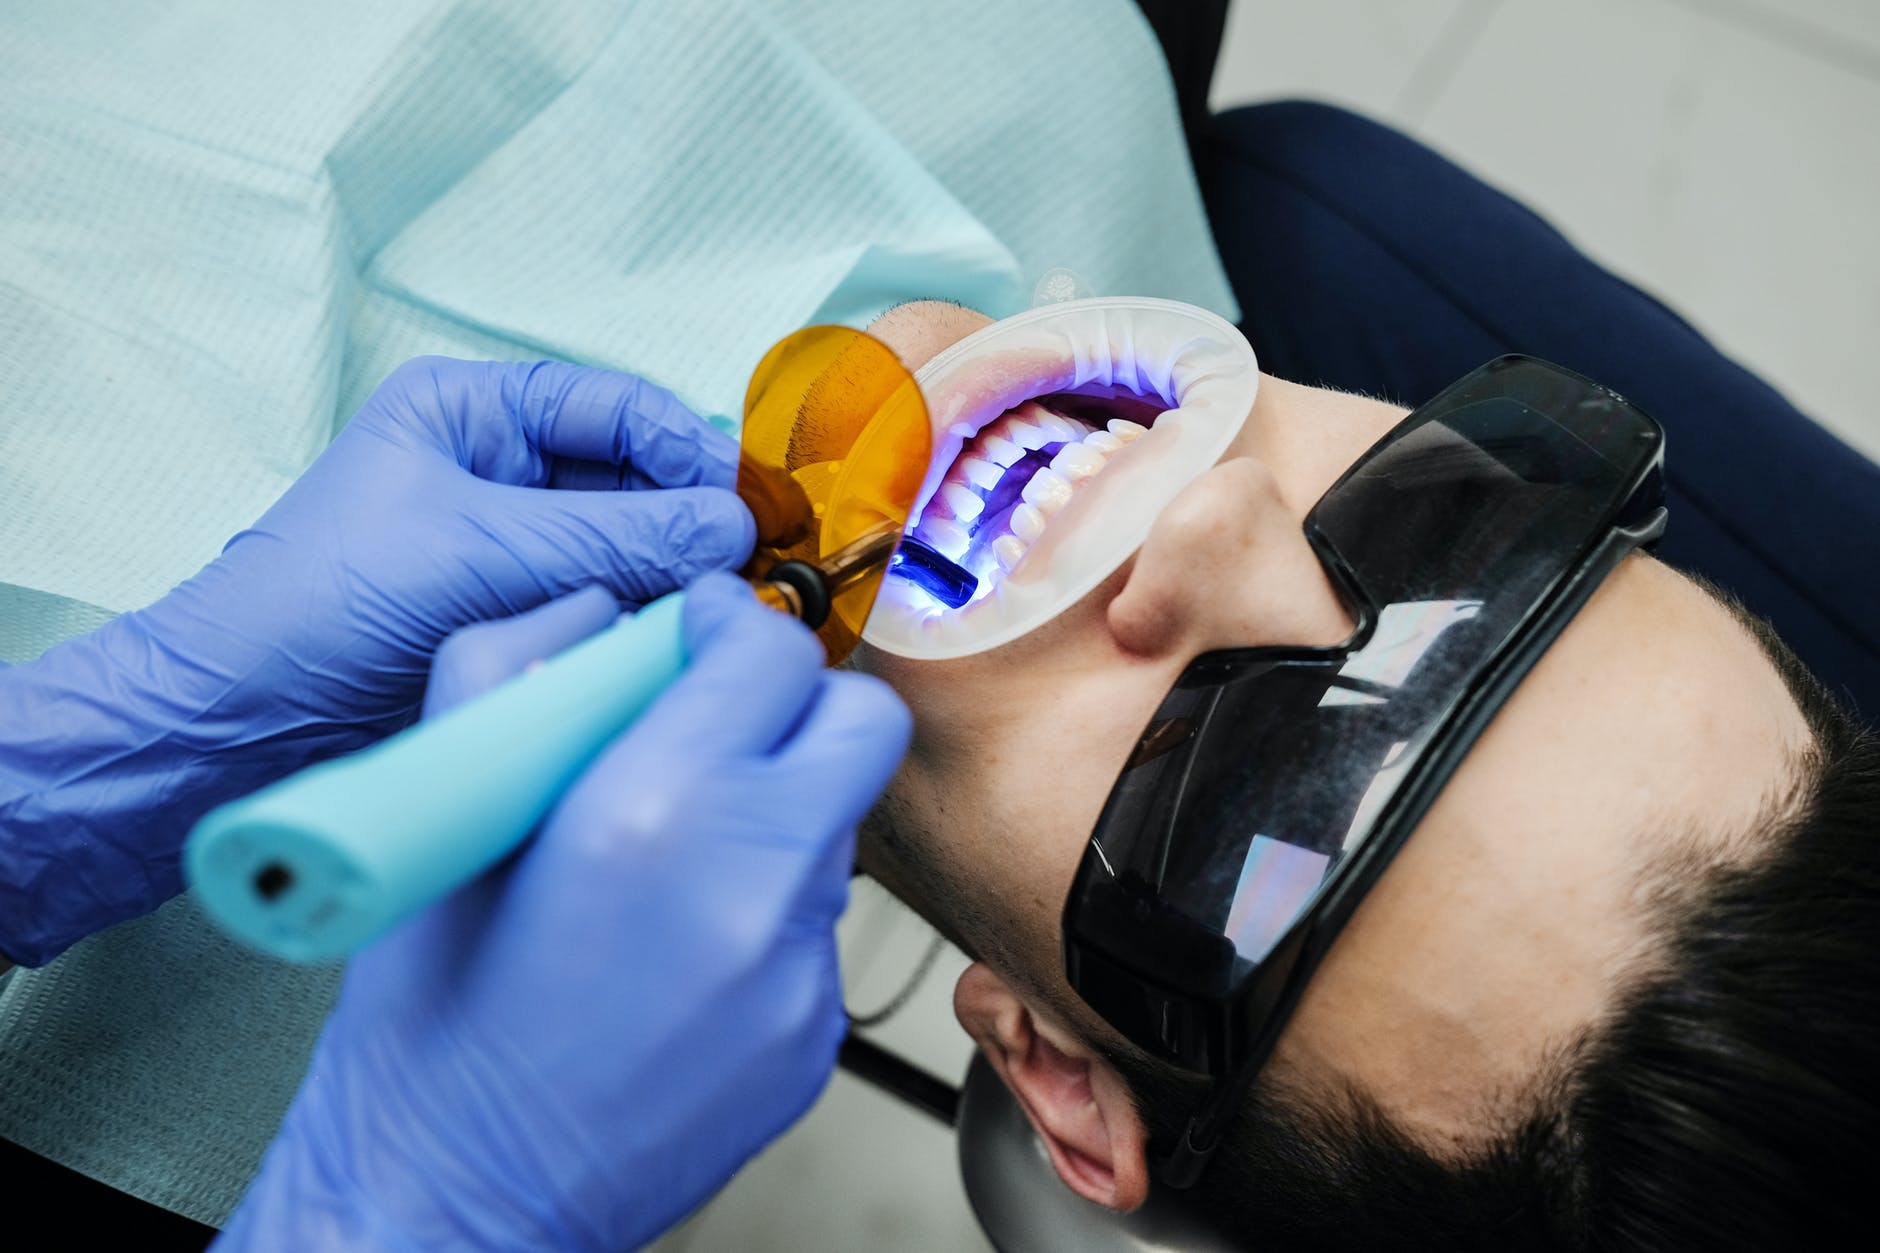 dentist making oral examine of patient with uv light equipment